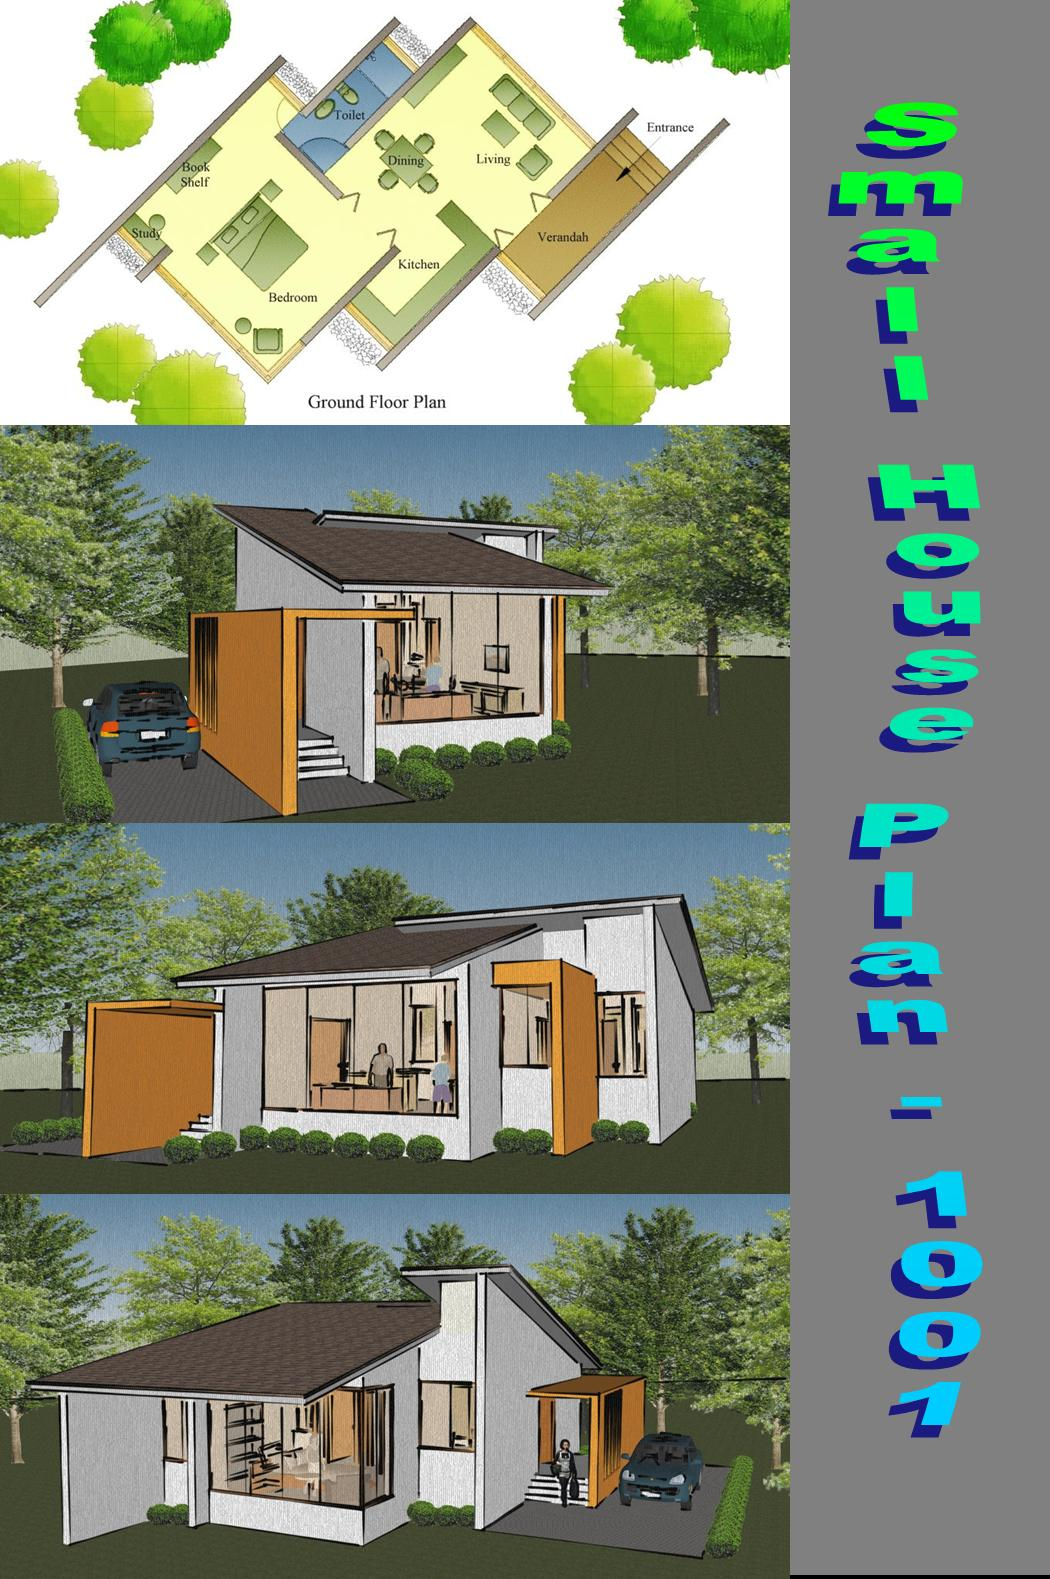 Best Small House Plans Of Home Plans In India 5 Best Small Home Plans From